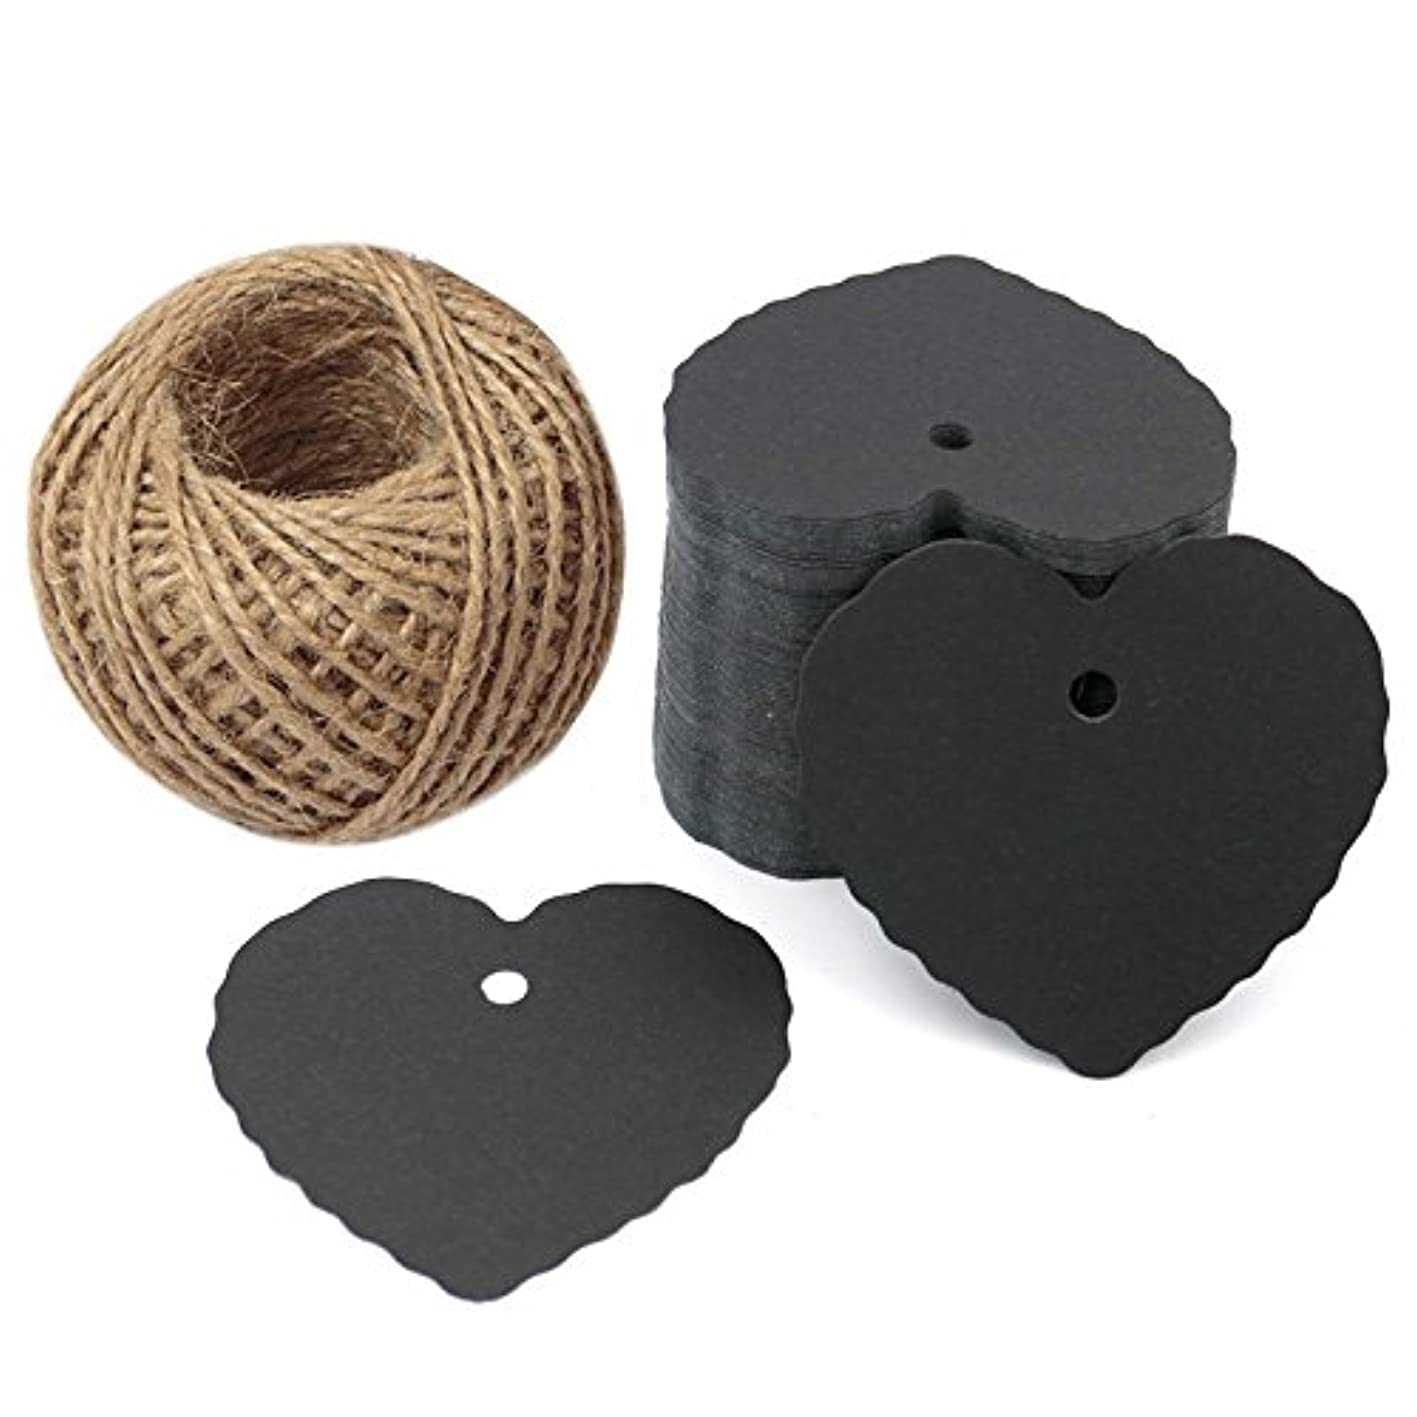 Black Paper Gift Tags,Heart Craft Tags,Wedding Favor Tags,100 Pcs Kraft Paper Tags with 100 Feet Natural Jute Twine yiptezlcfmv352